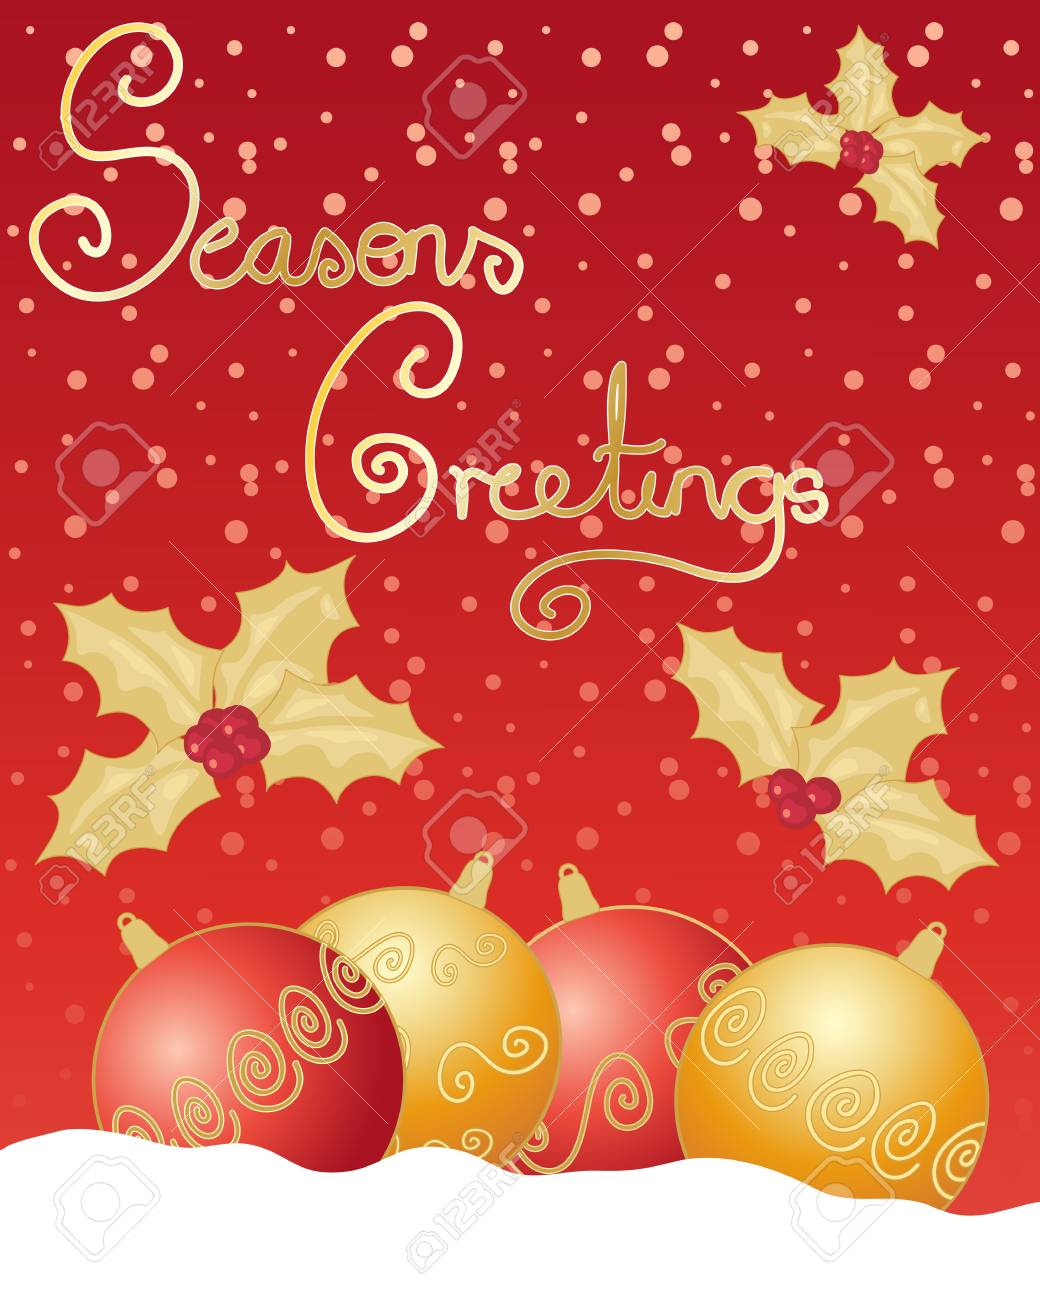 An Illustration Of A Christmas Greeting Card With Red And Gold